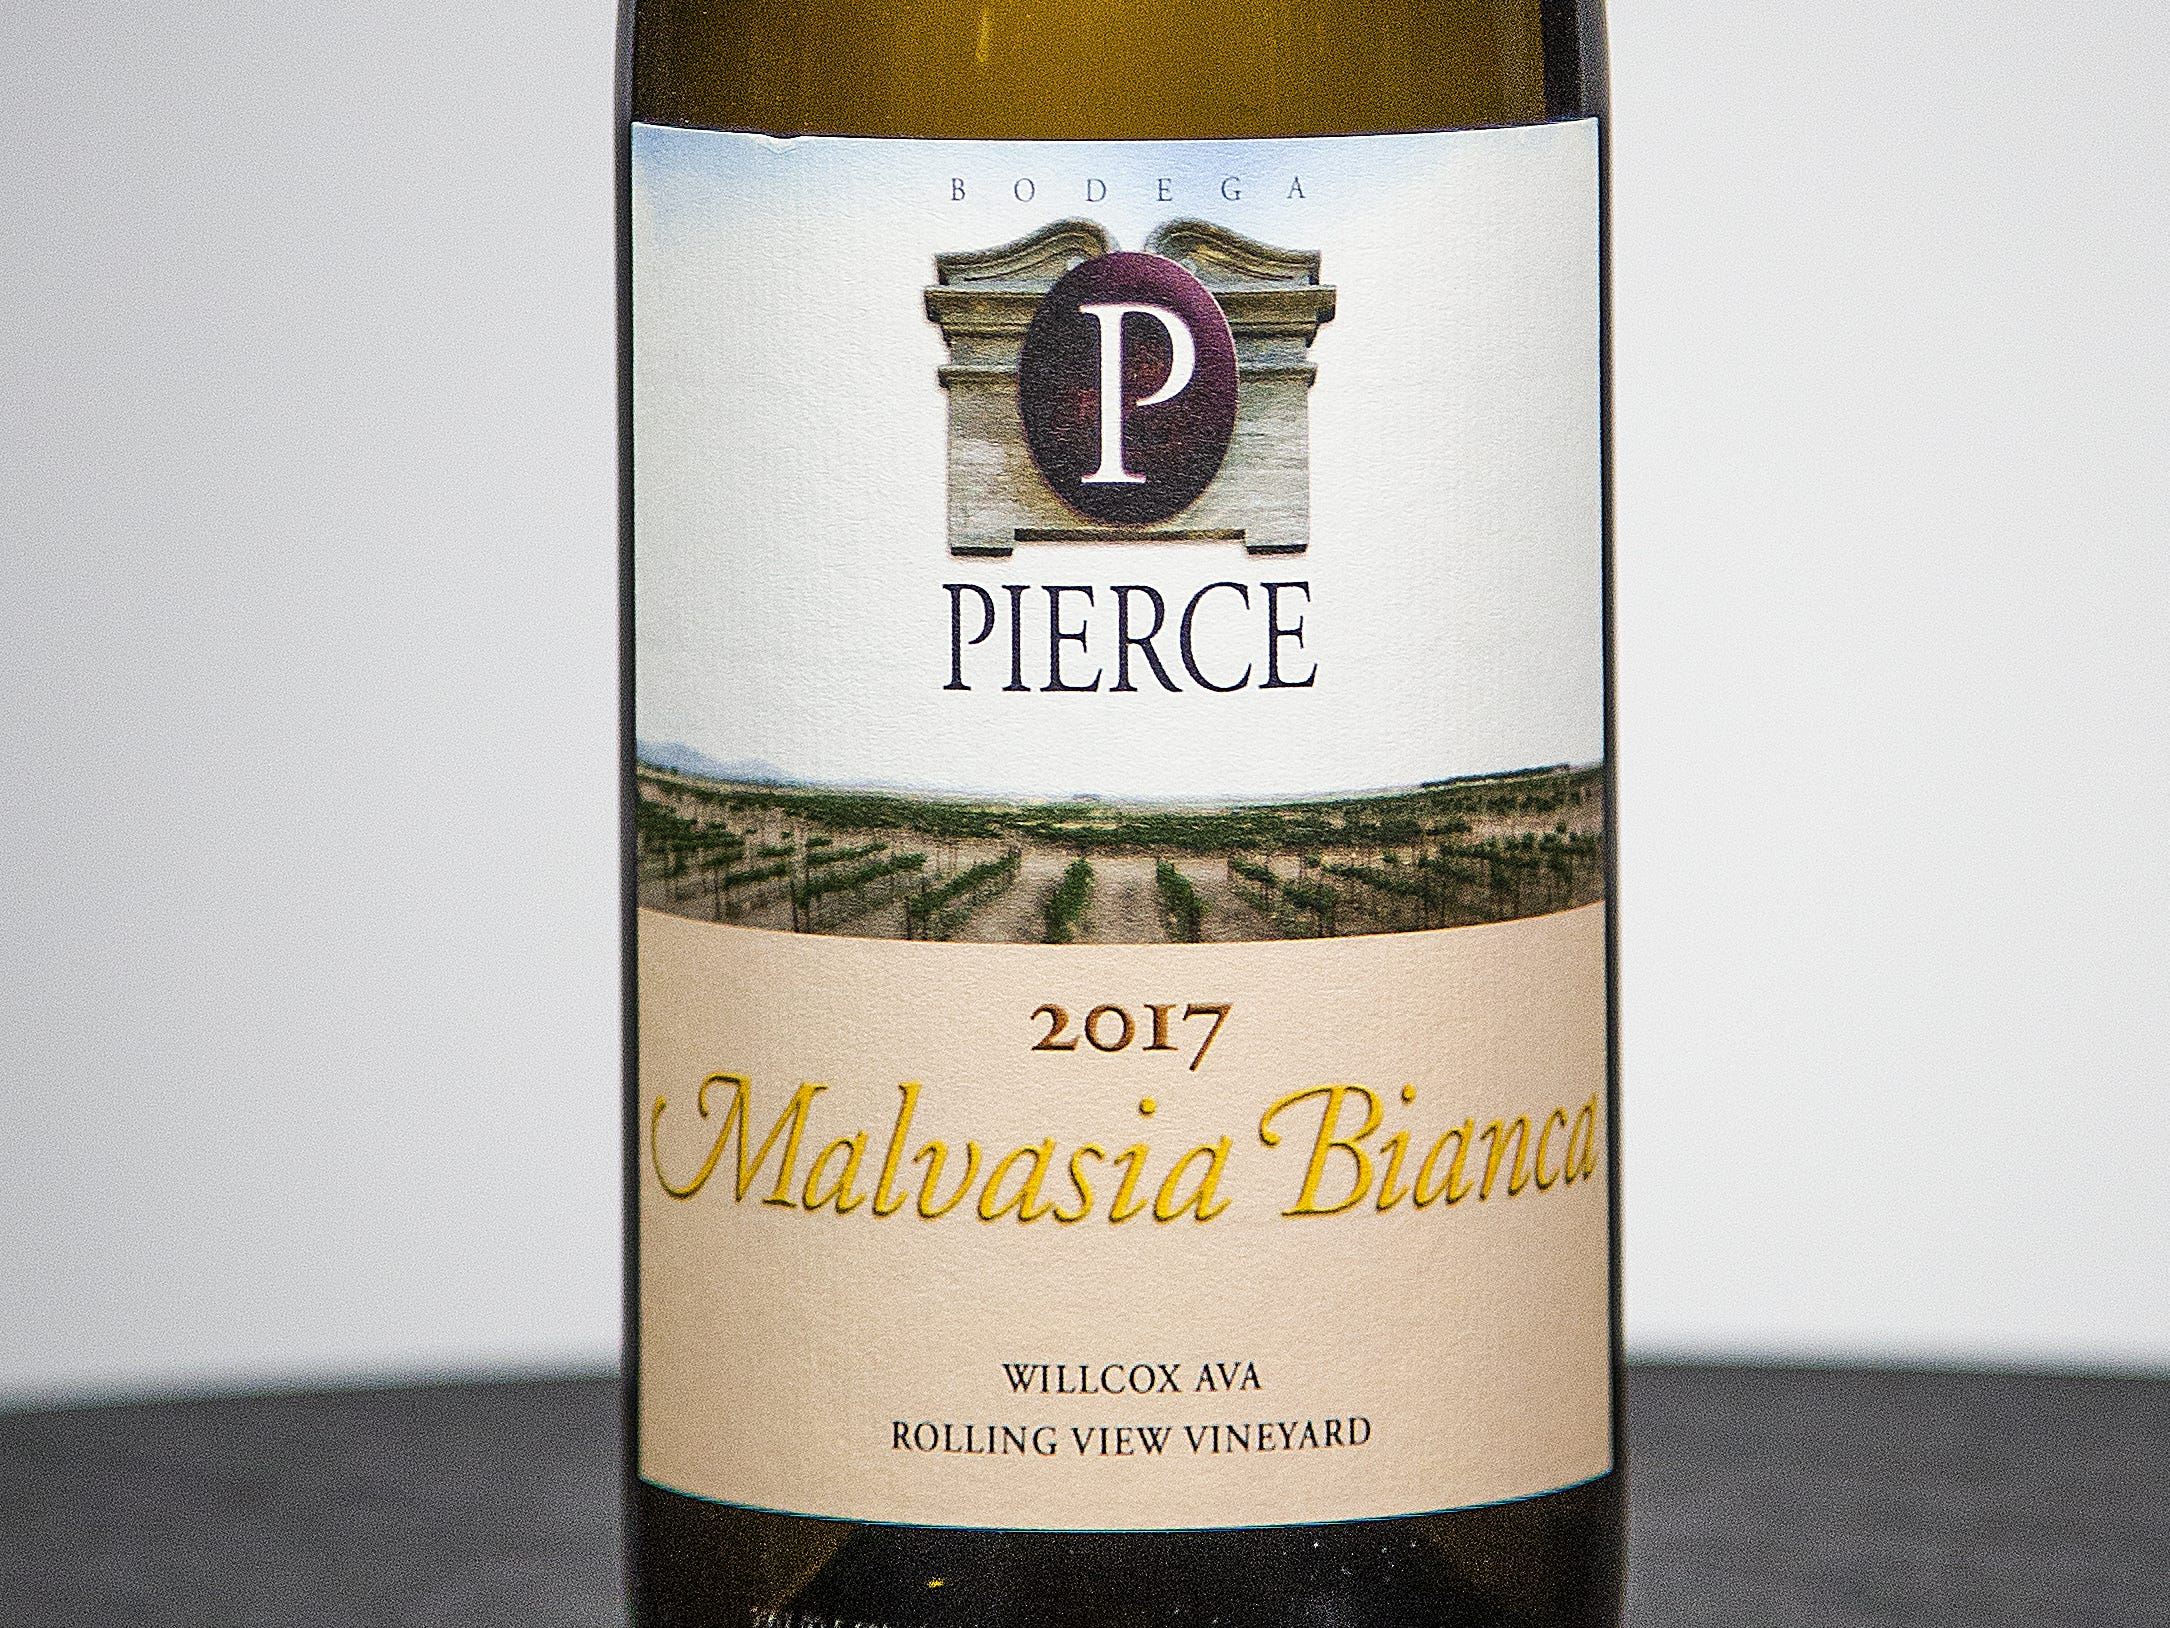 Best White Wine (tie): Bodega Pierce Malvasia Bianca 2017. This wine was also named  Best Malvasia Bianca.